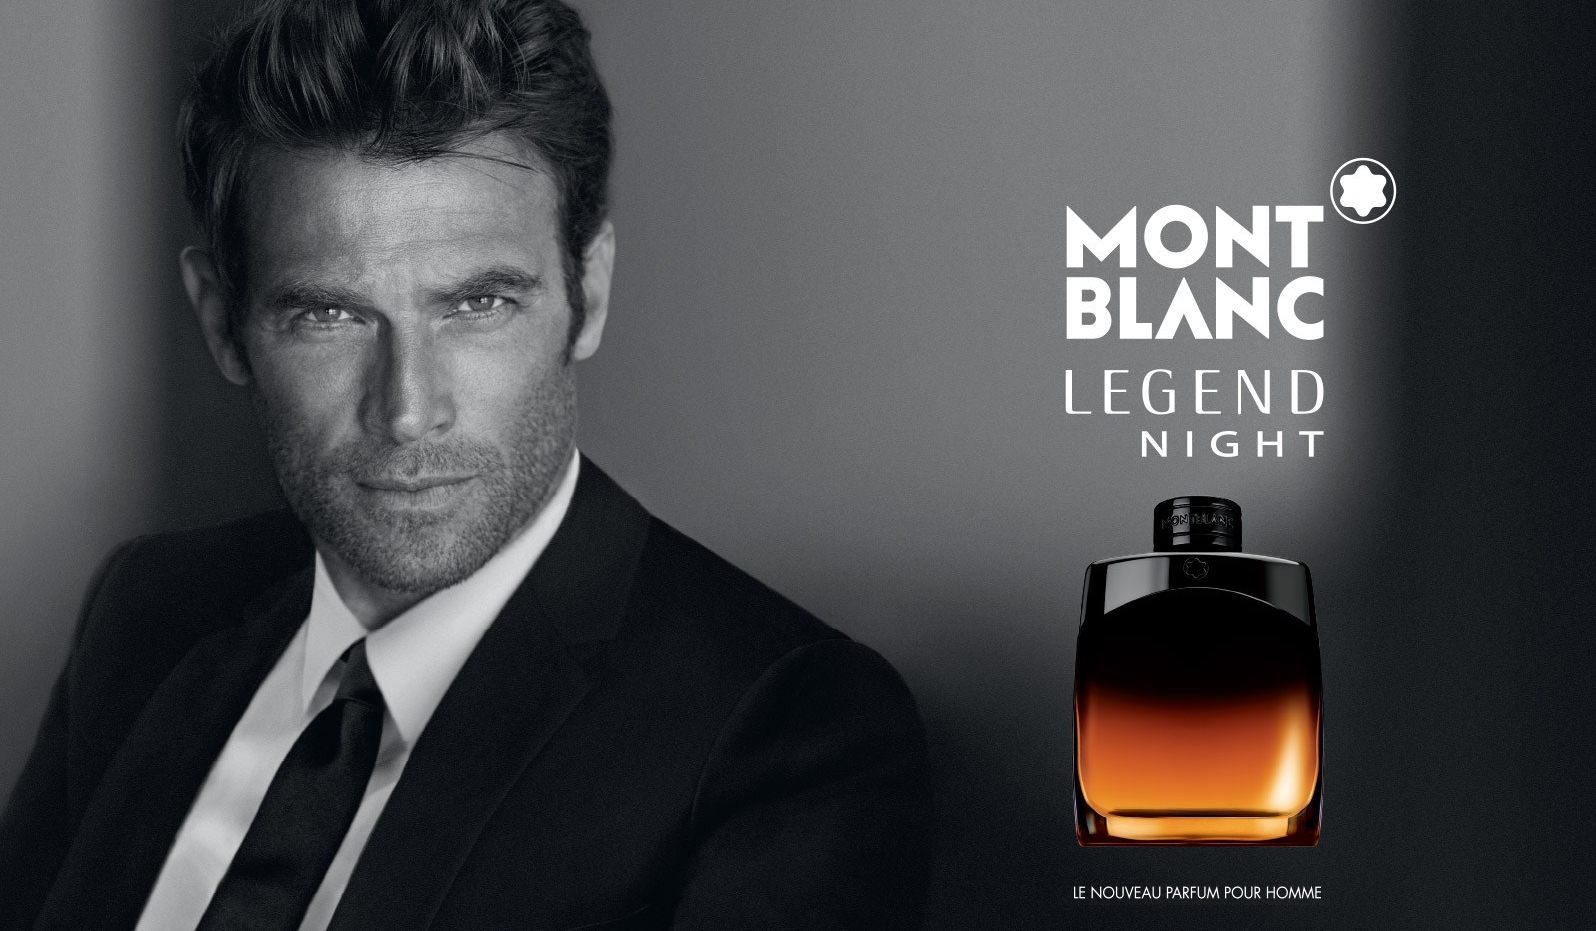 Mont Blanc Legend Night: queridinho da semana